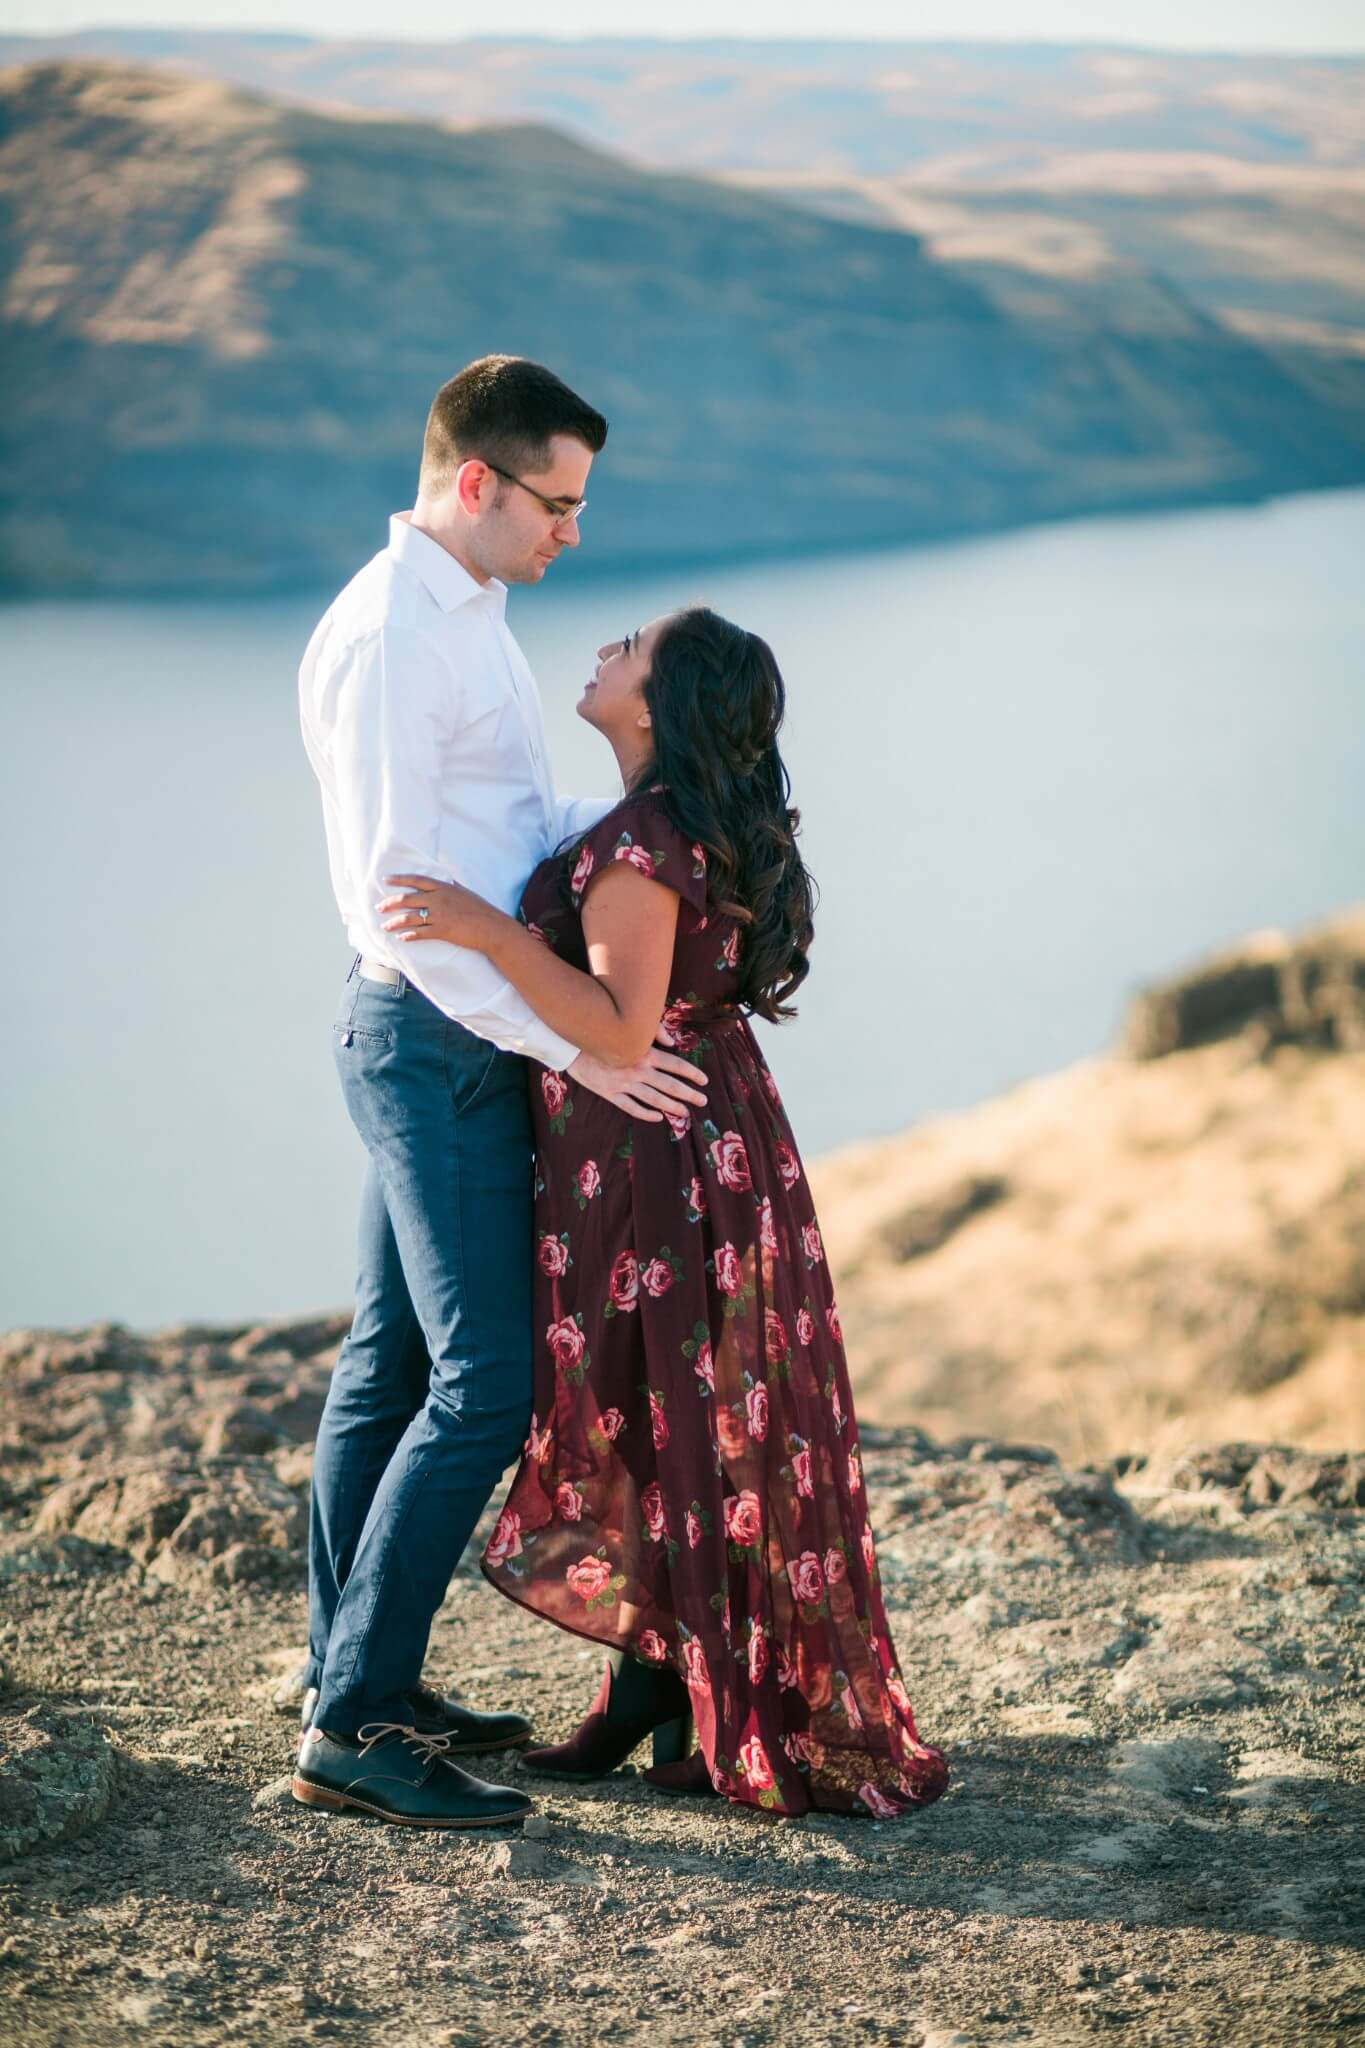 Lesly & Michael Vantage Engagement by Bill Weisgerber Spokane Photographer (10 of 71).jpg